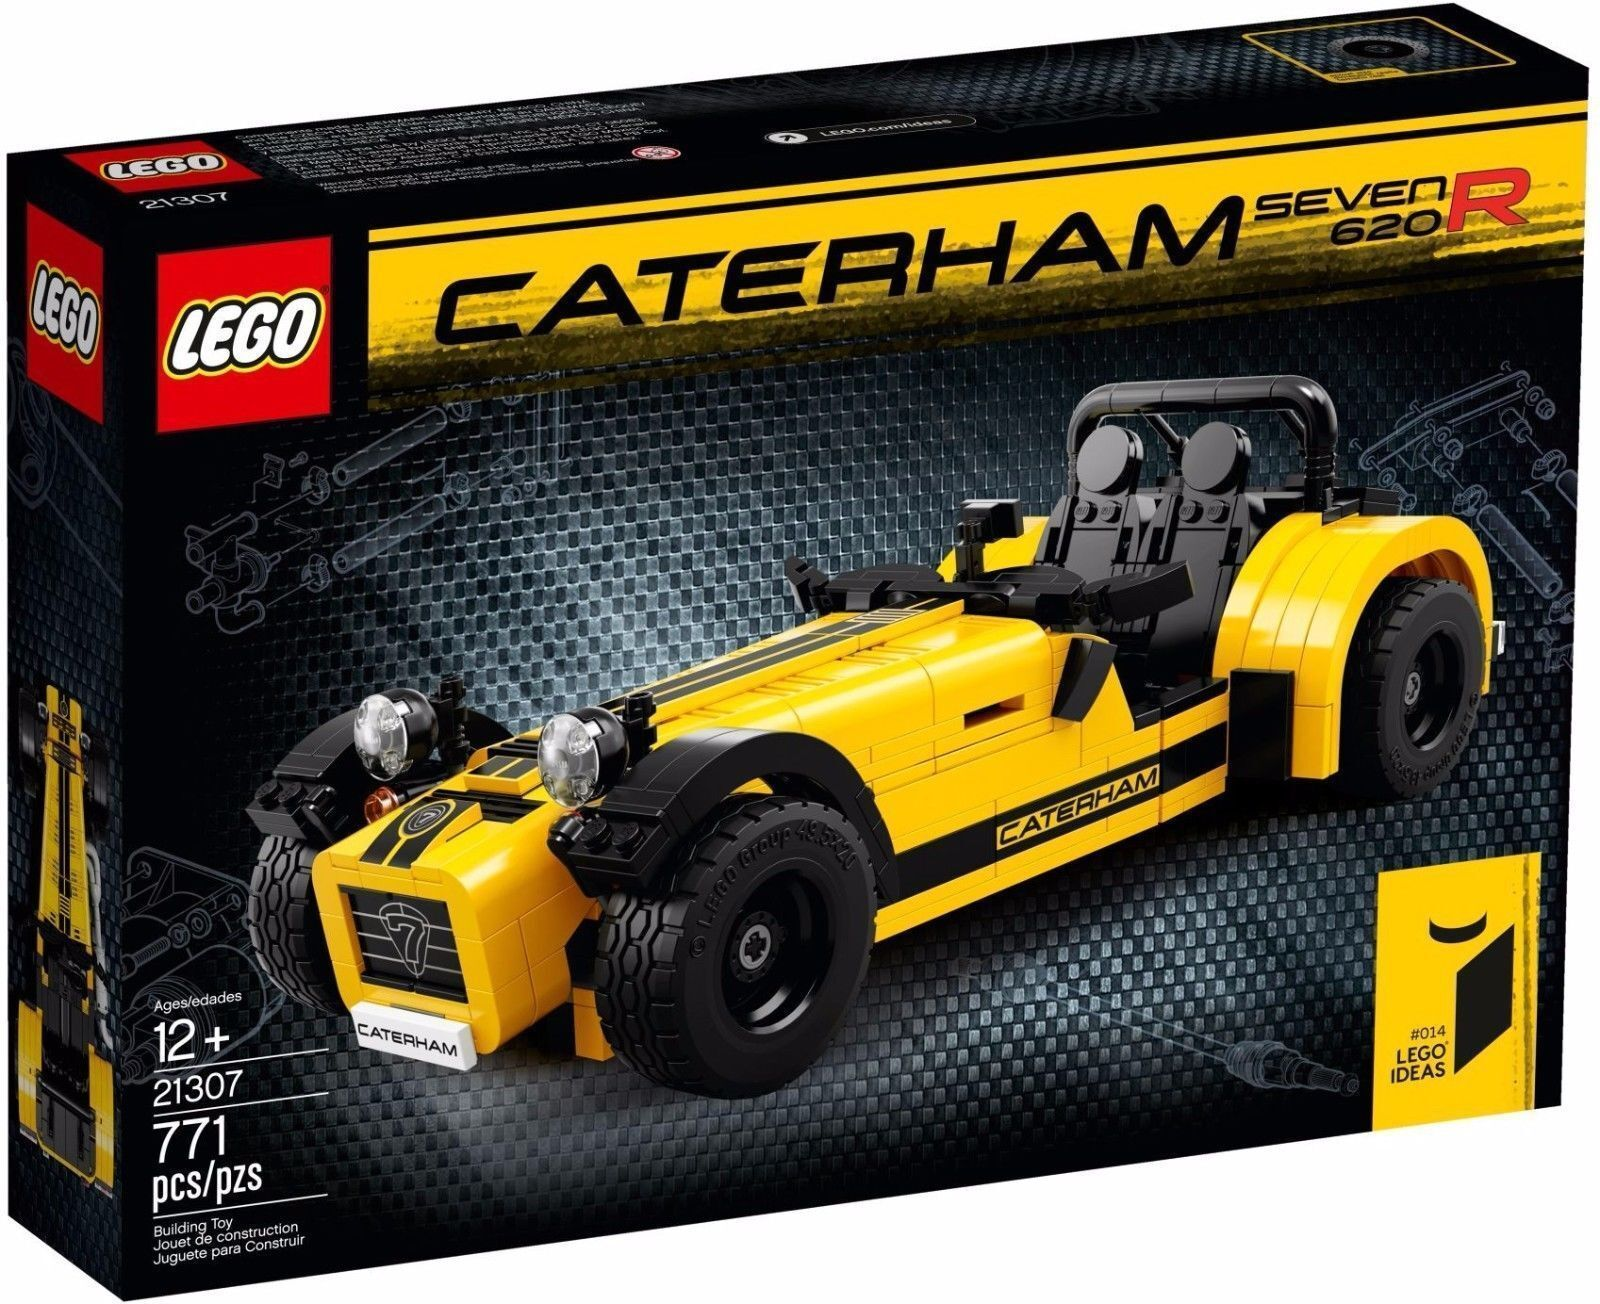 LEGO 21307 Caterham Seven 620R - Brand New Limited Edition - WORLDWIDE SHIPPING